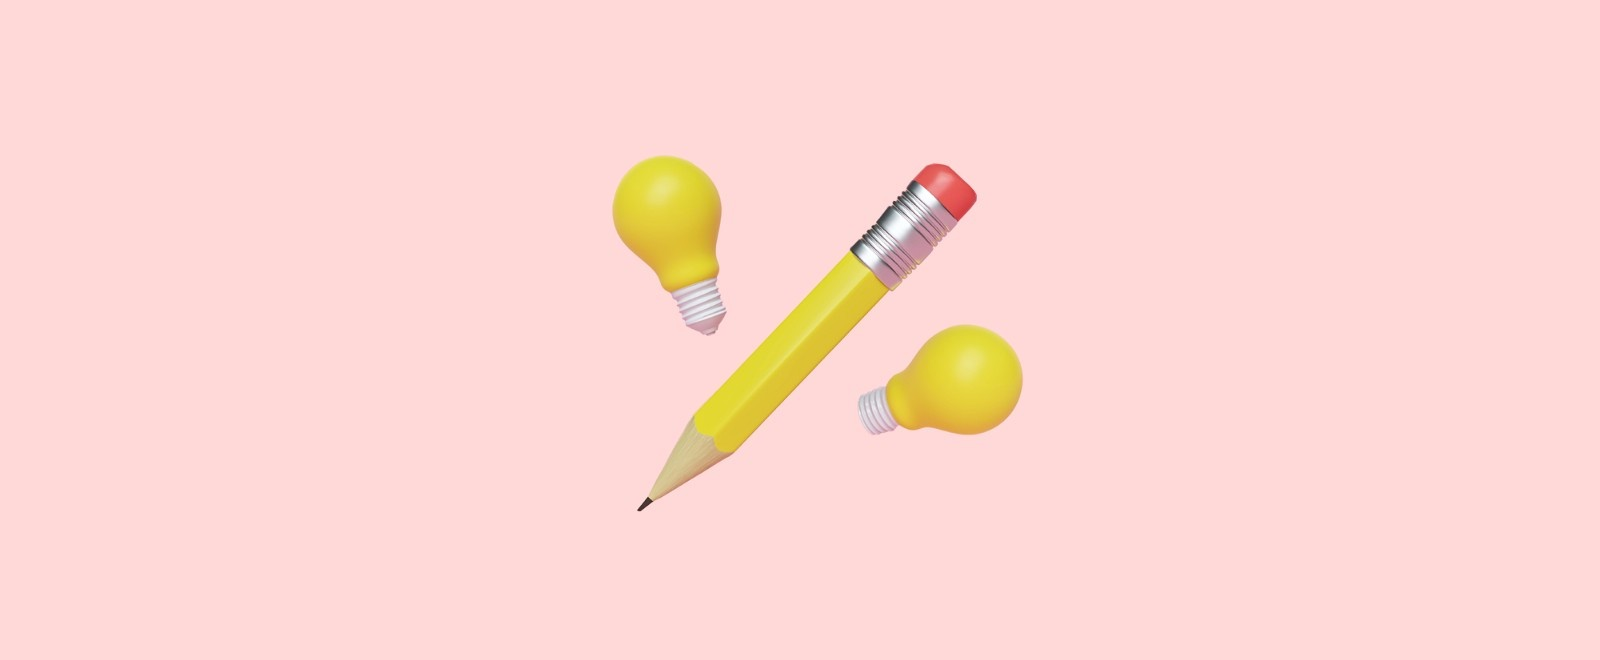 Pencil and light bulbs on pink background